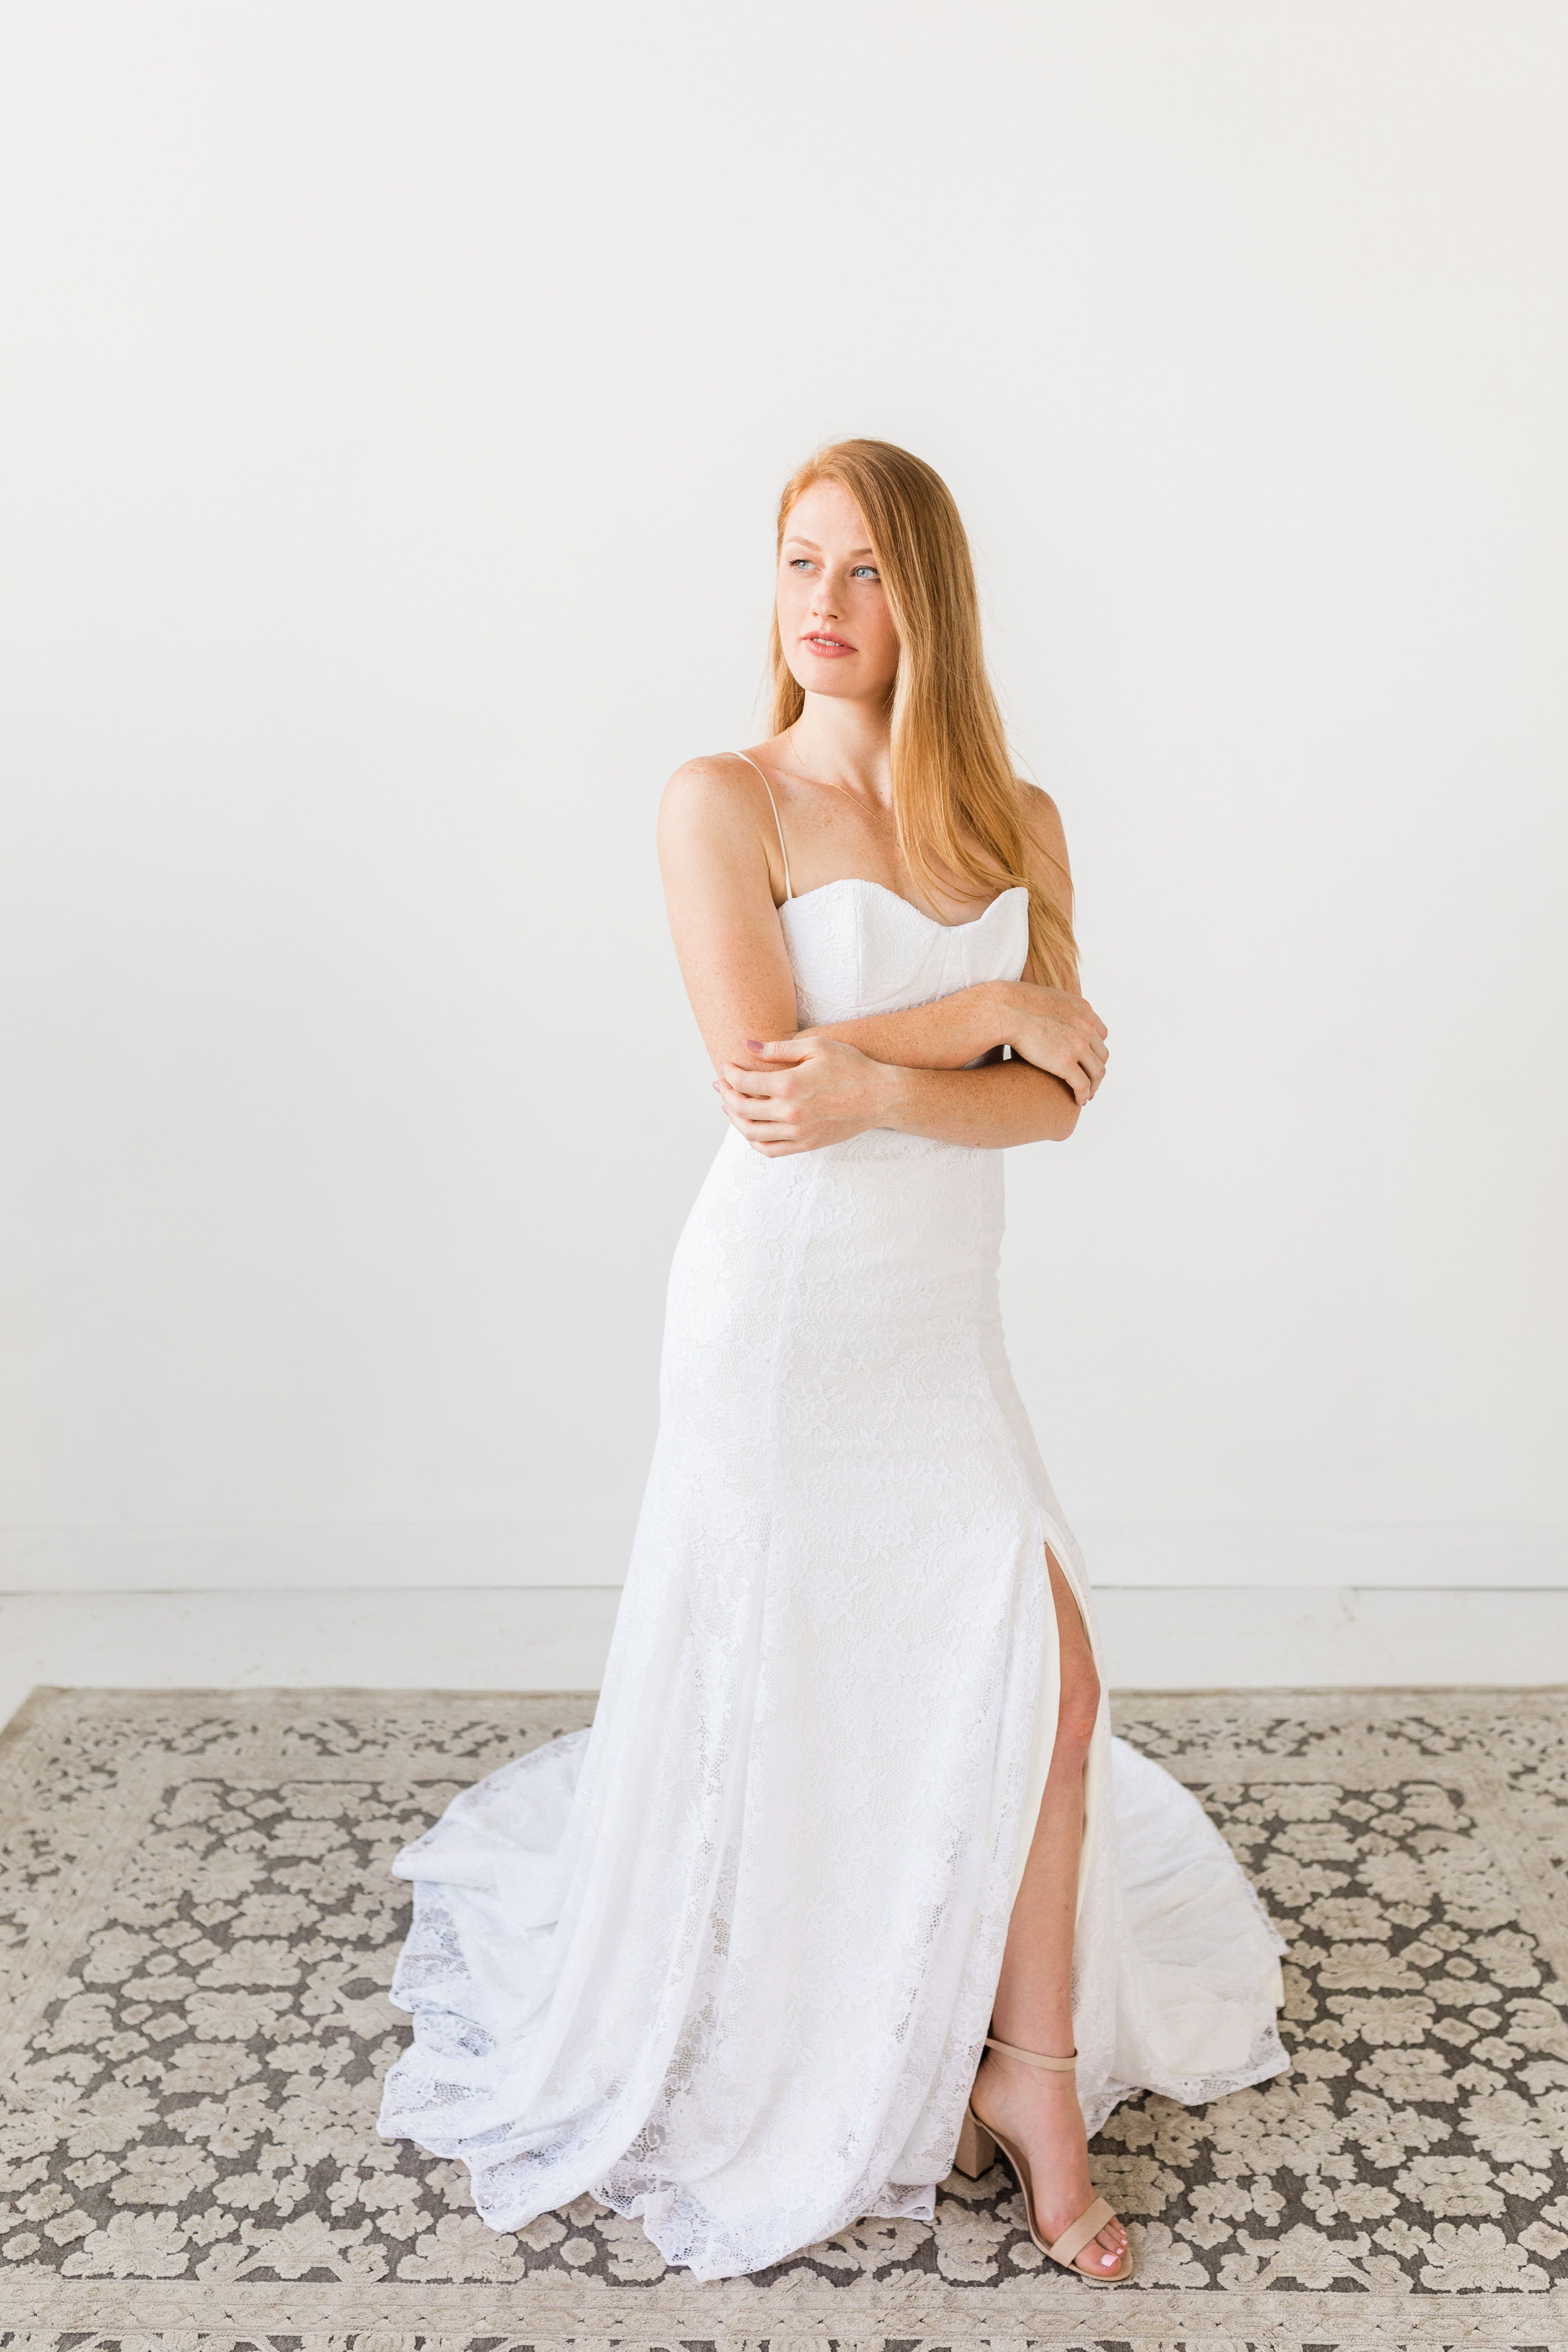 The Charlie Dress From Hyacinth Bridal S 2019 Collection Creative Director Stylist And Planner Perry Rose Media With Images Crepe Wedding Dress Dresses Romantic Dress